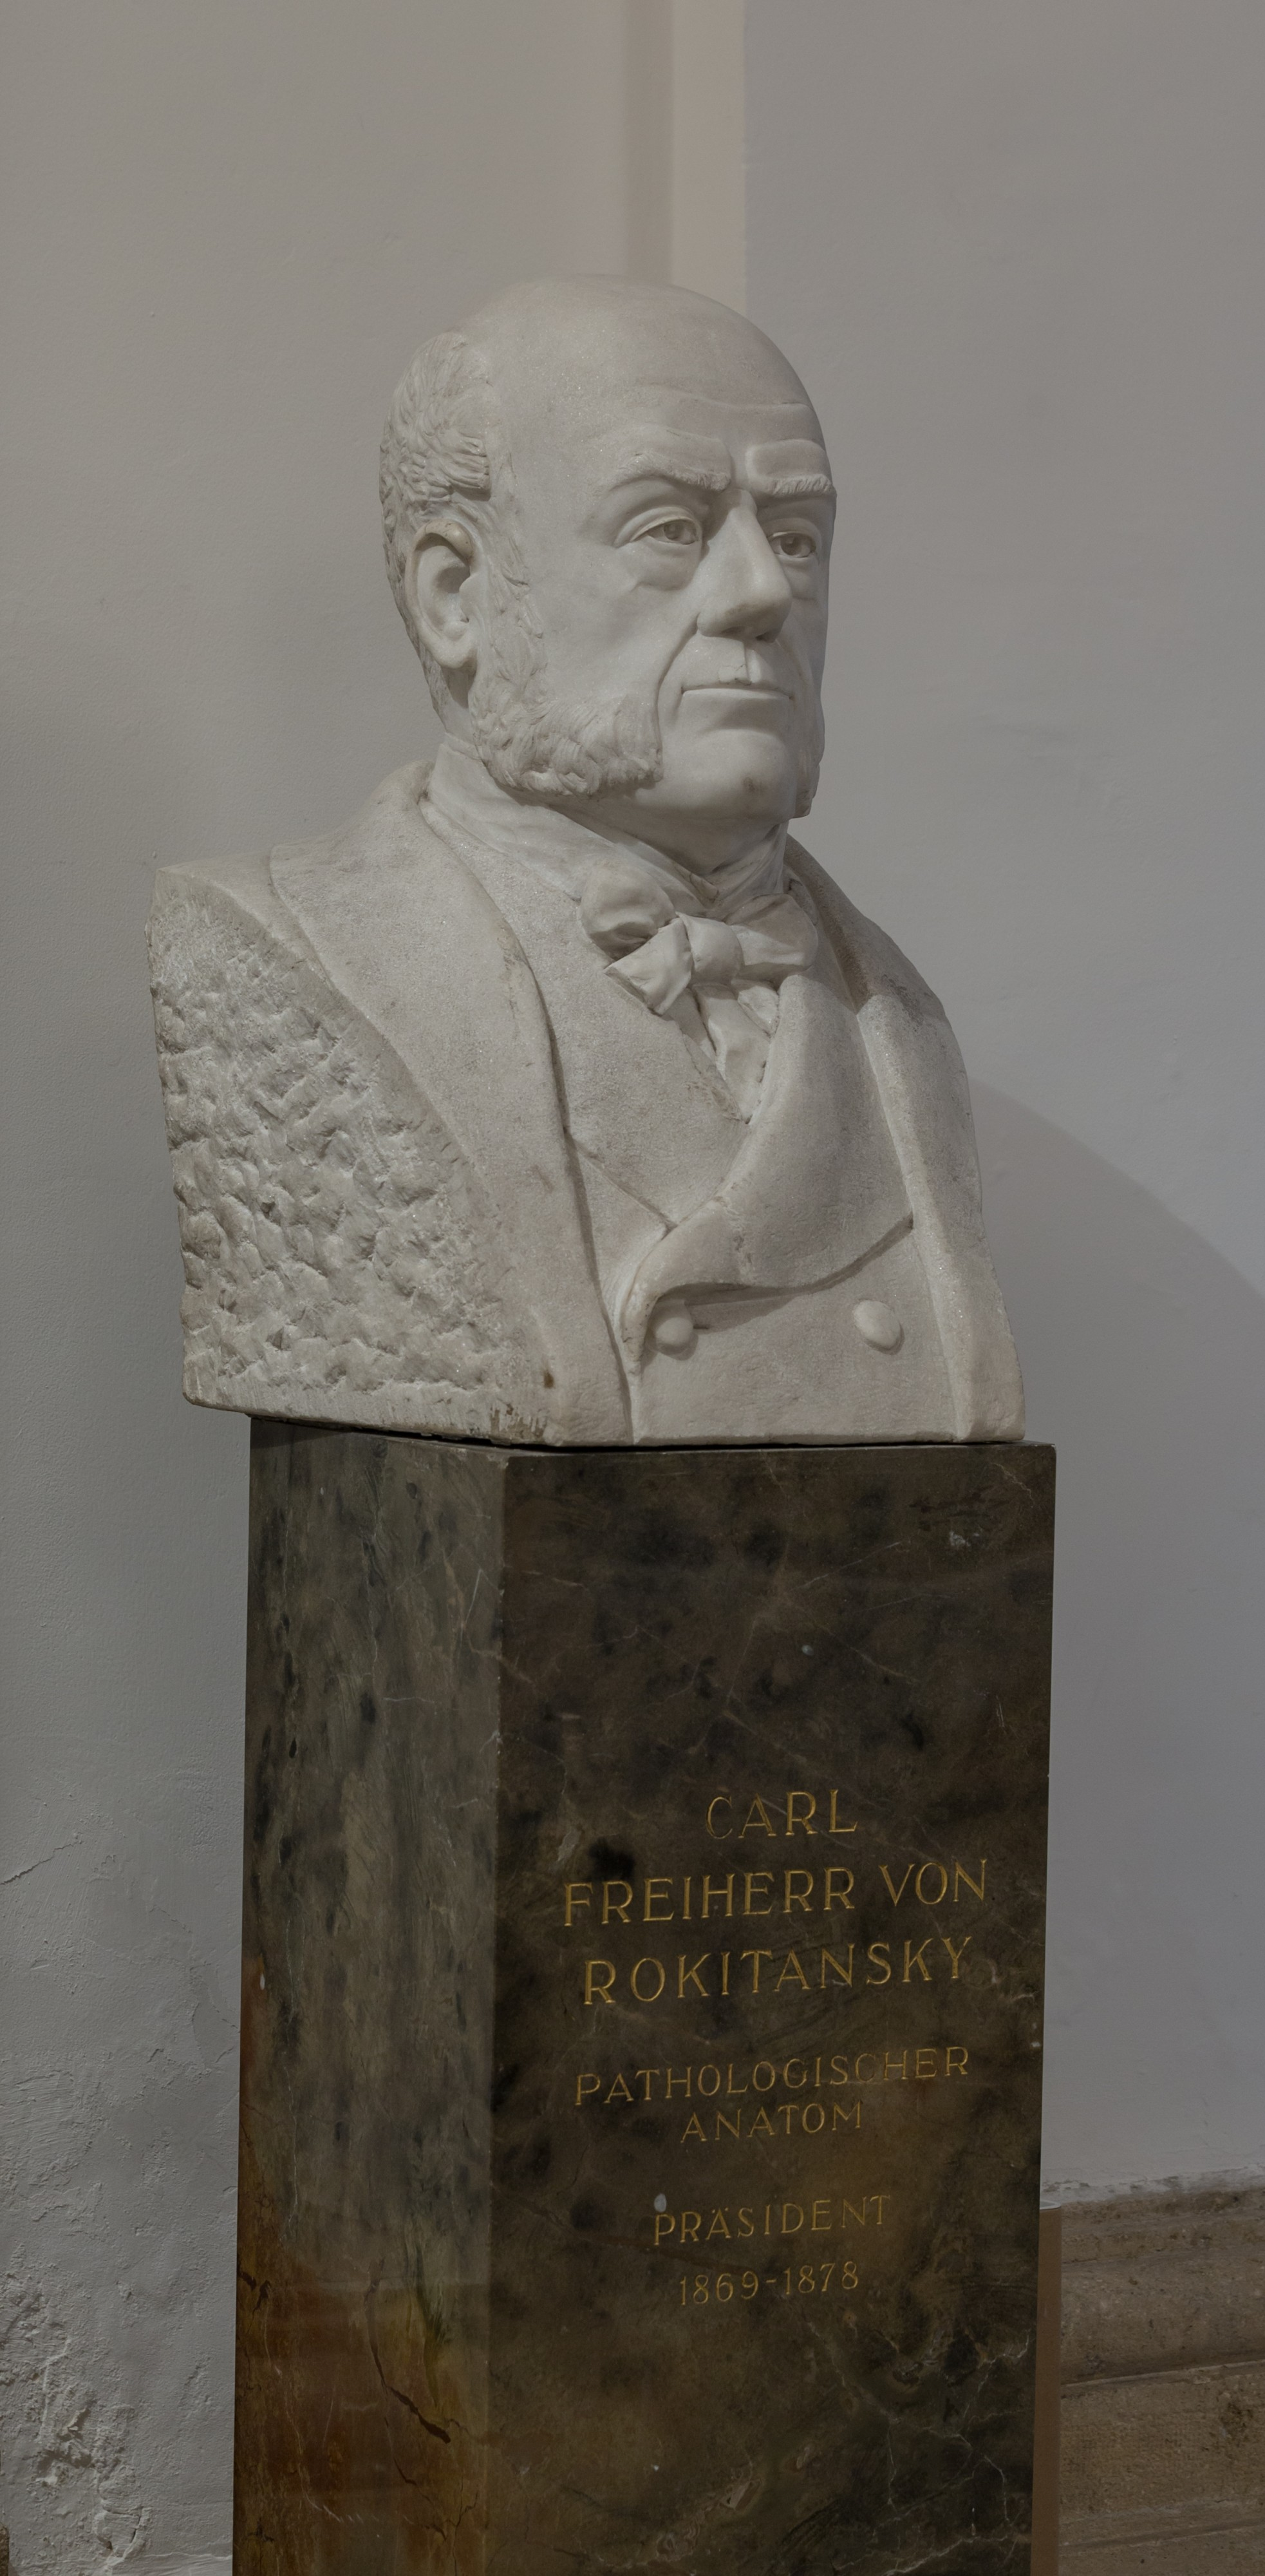 Carl von Rokitansky, Pathologist, bust in the aula of the Academy of Sciencis, Vienna - hu - 8540